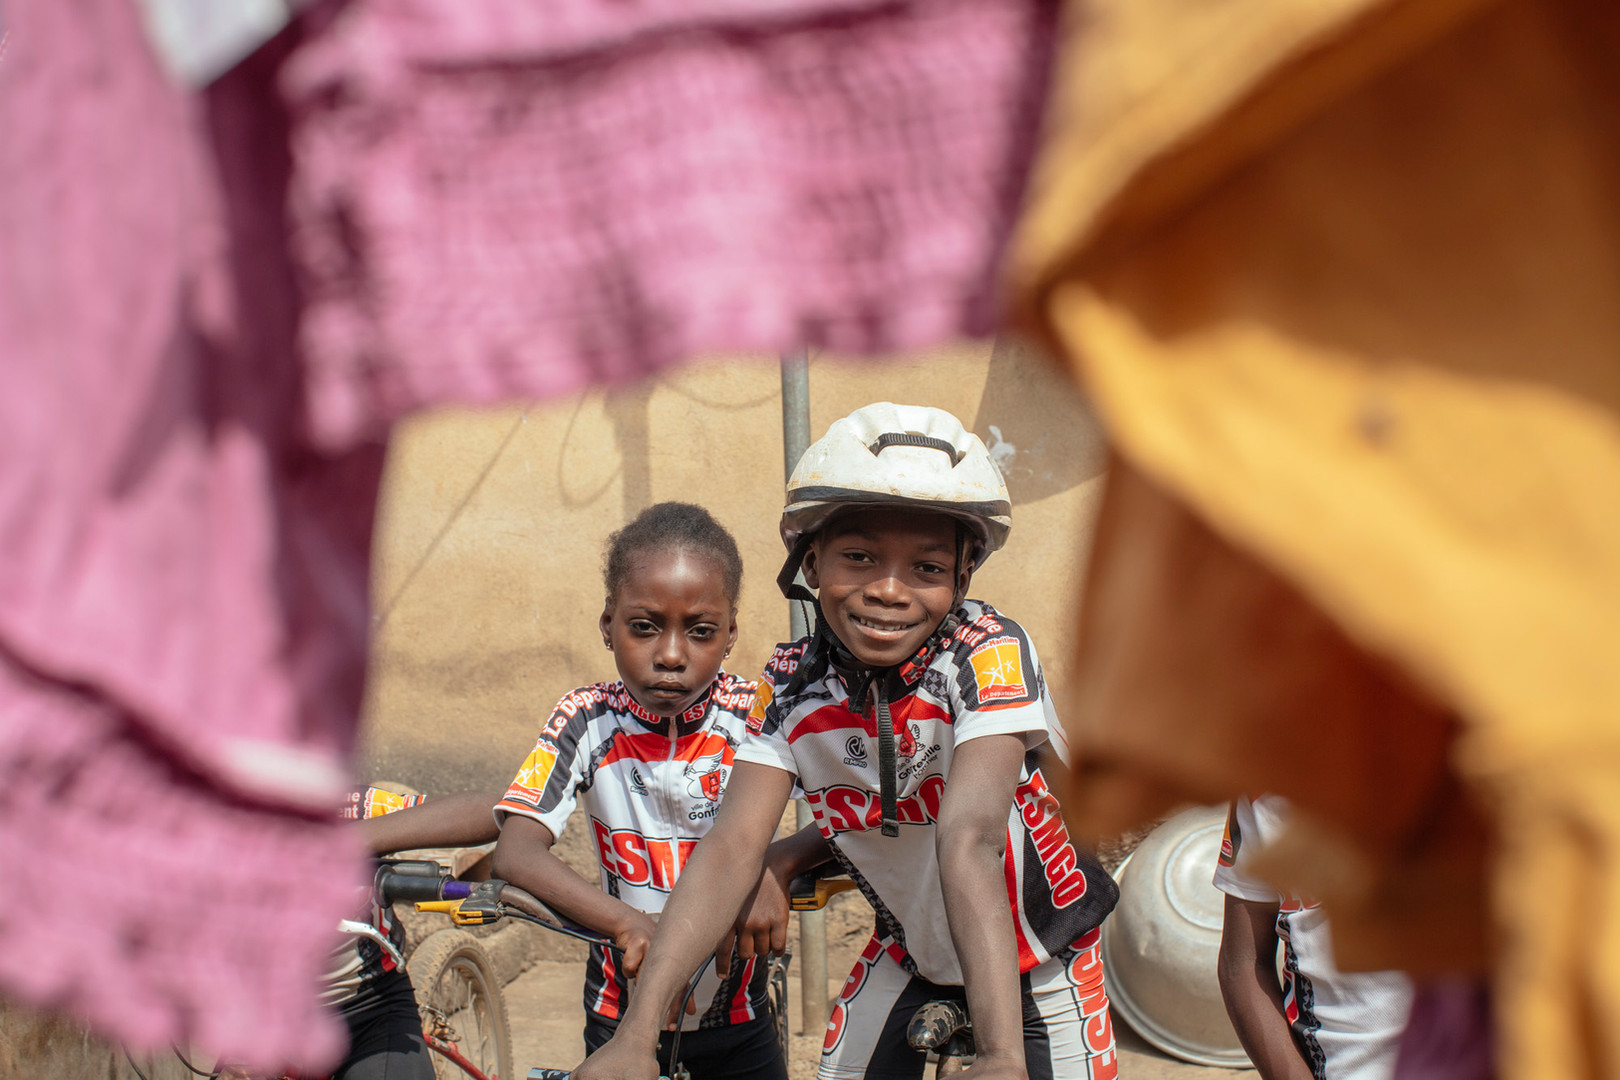 0051_Togo_KpaliméCyclingProject_20151220